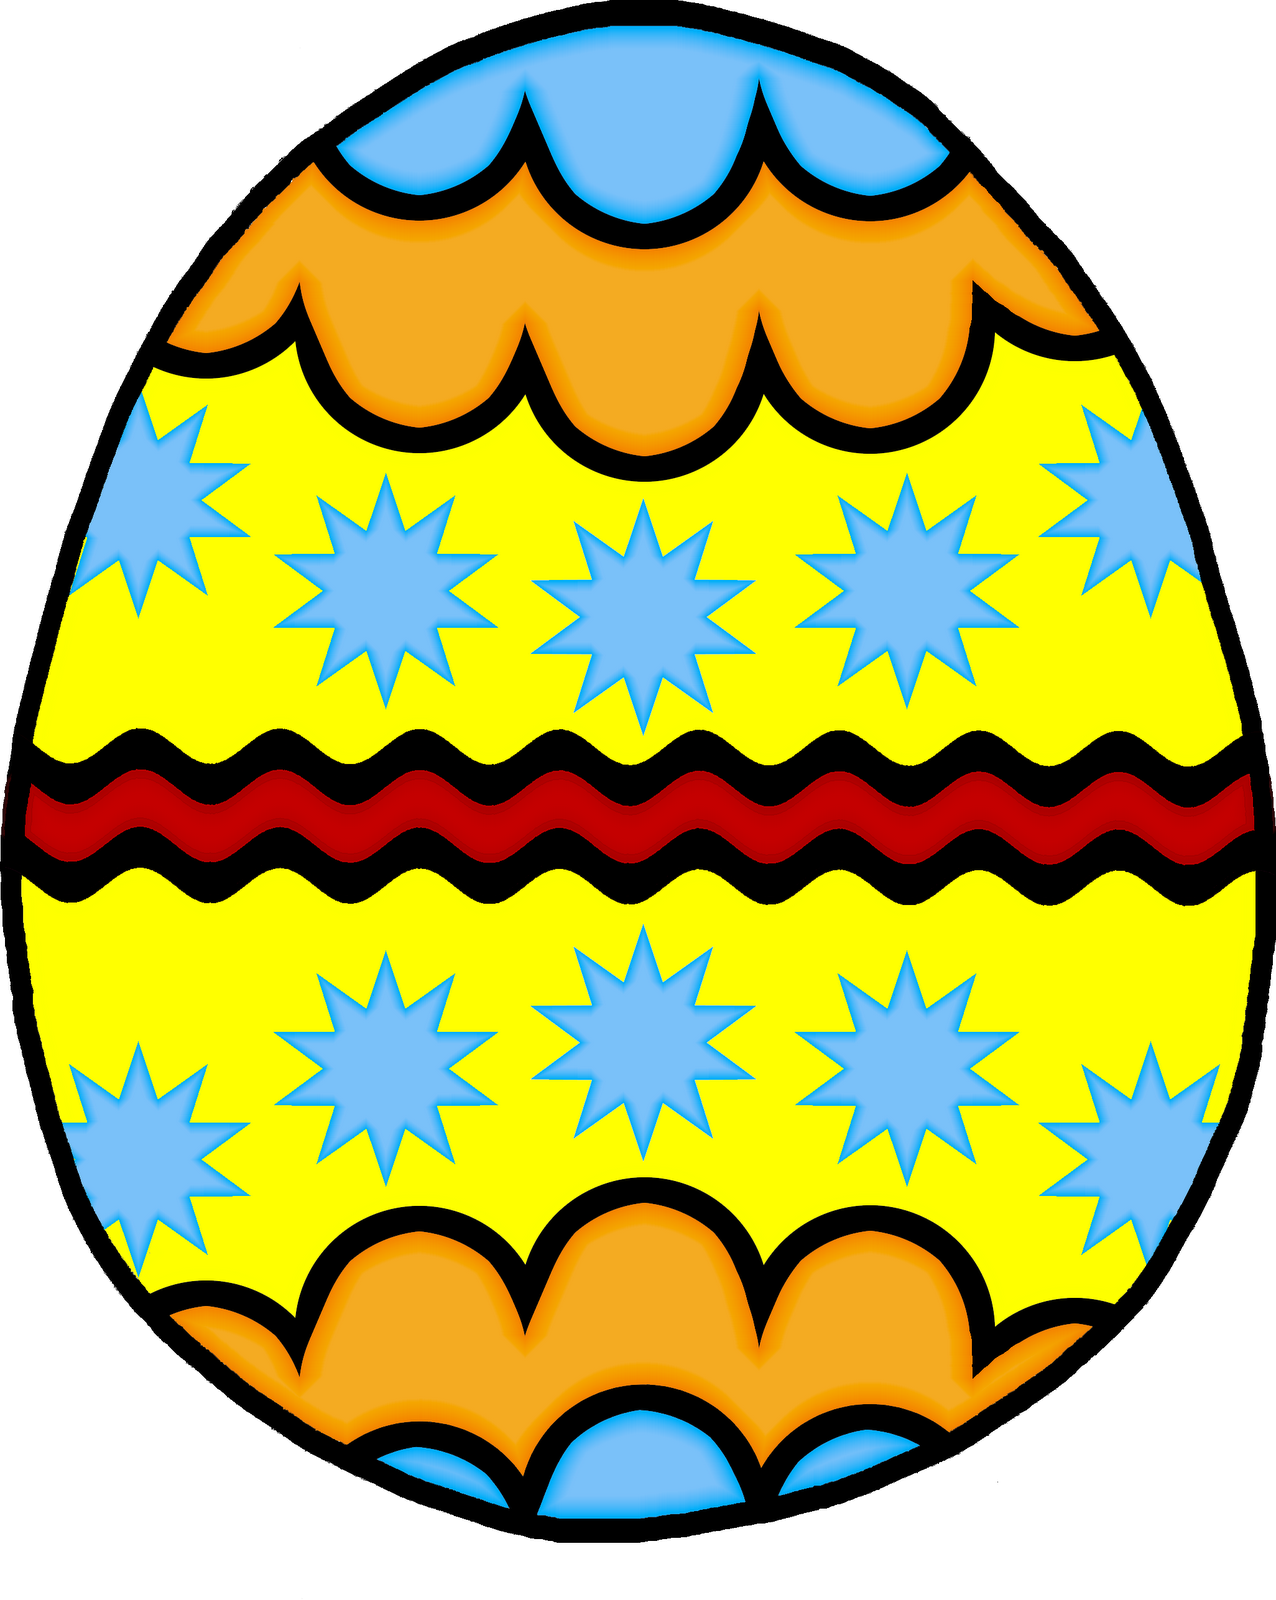 ... Easter Egg Clipart - Free Clipart Images ...